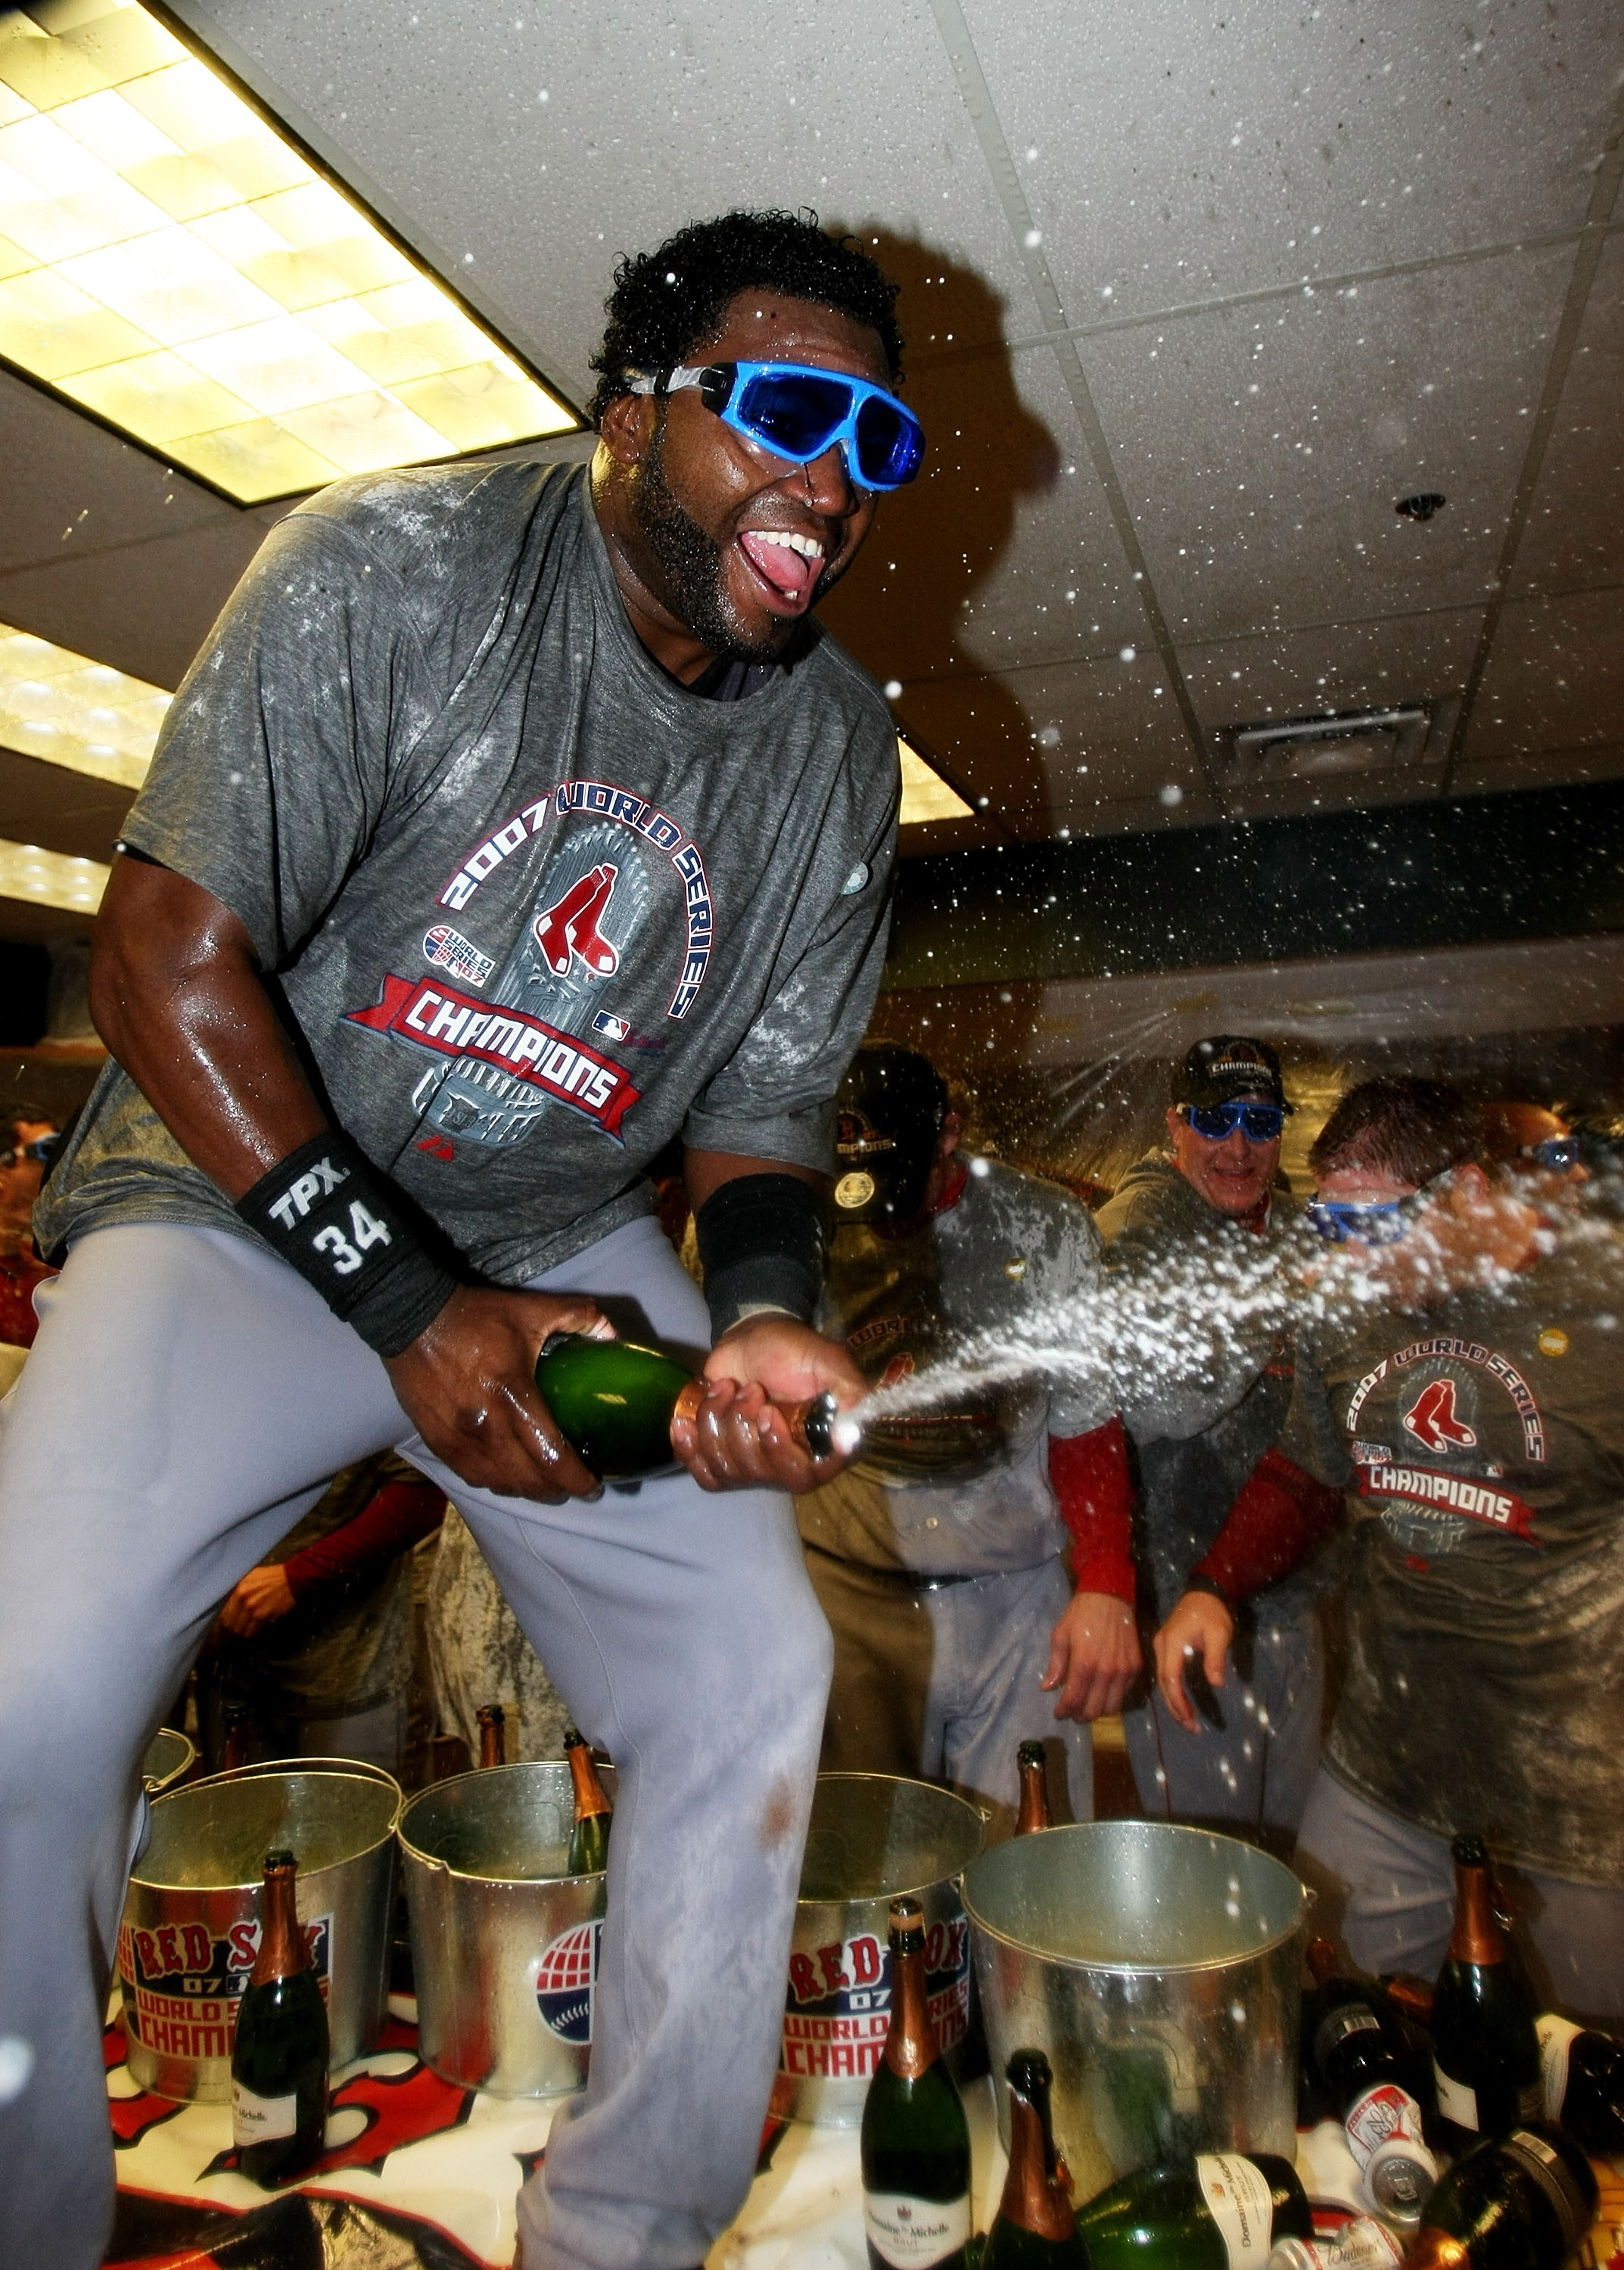 David Ortiz parties in the locker room after sweeping the Colorado Rockies in the 2007 World Series